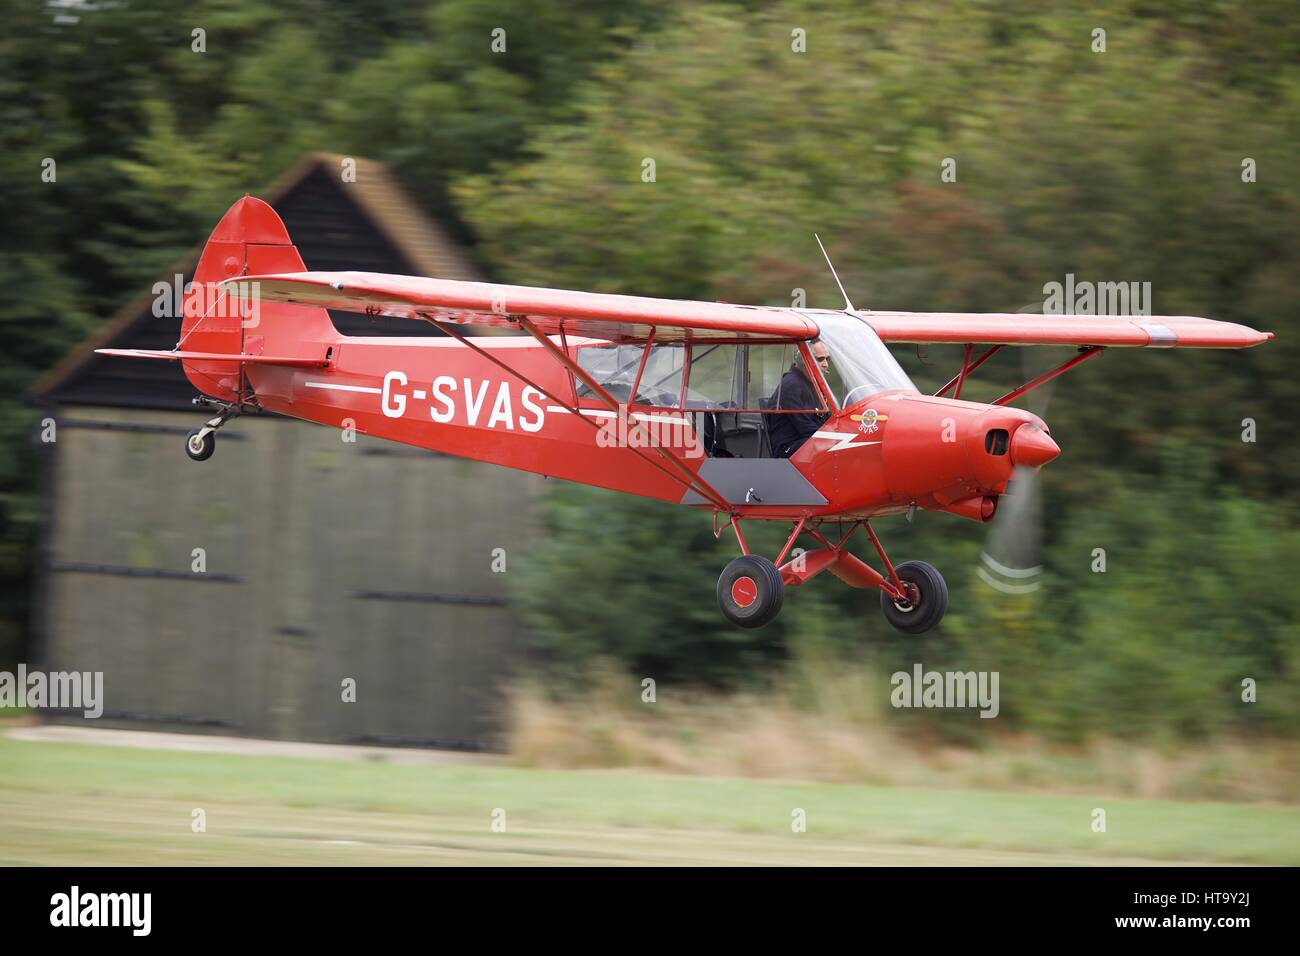 Vintage Piper Cub Stock Photos & Vintage Piper Cub Stock Images - Alamy